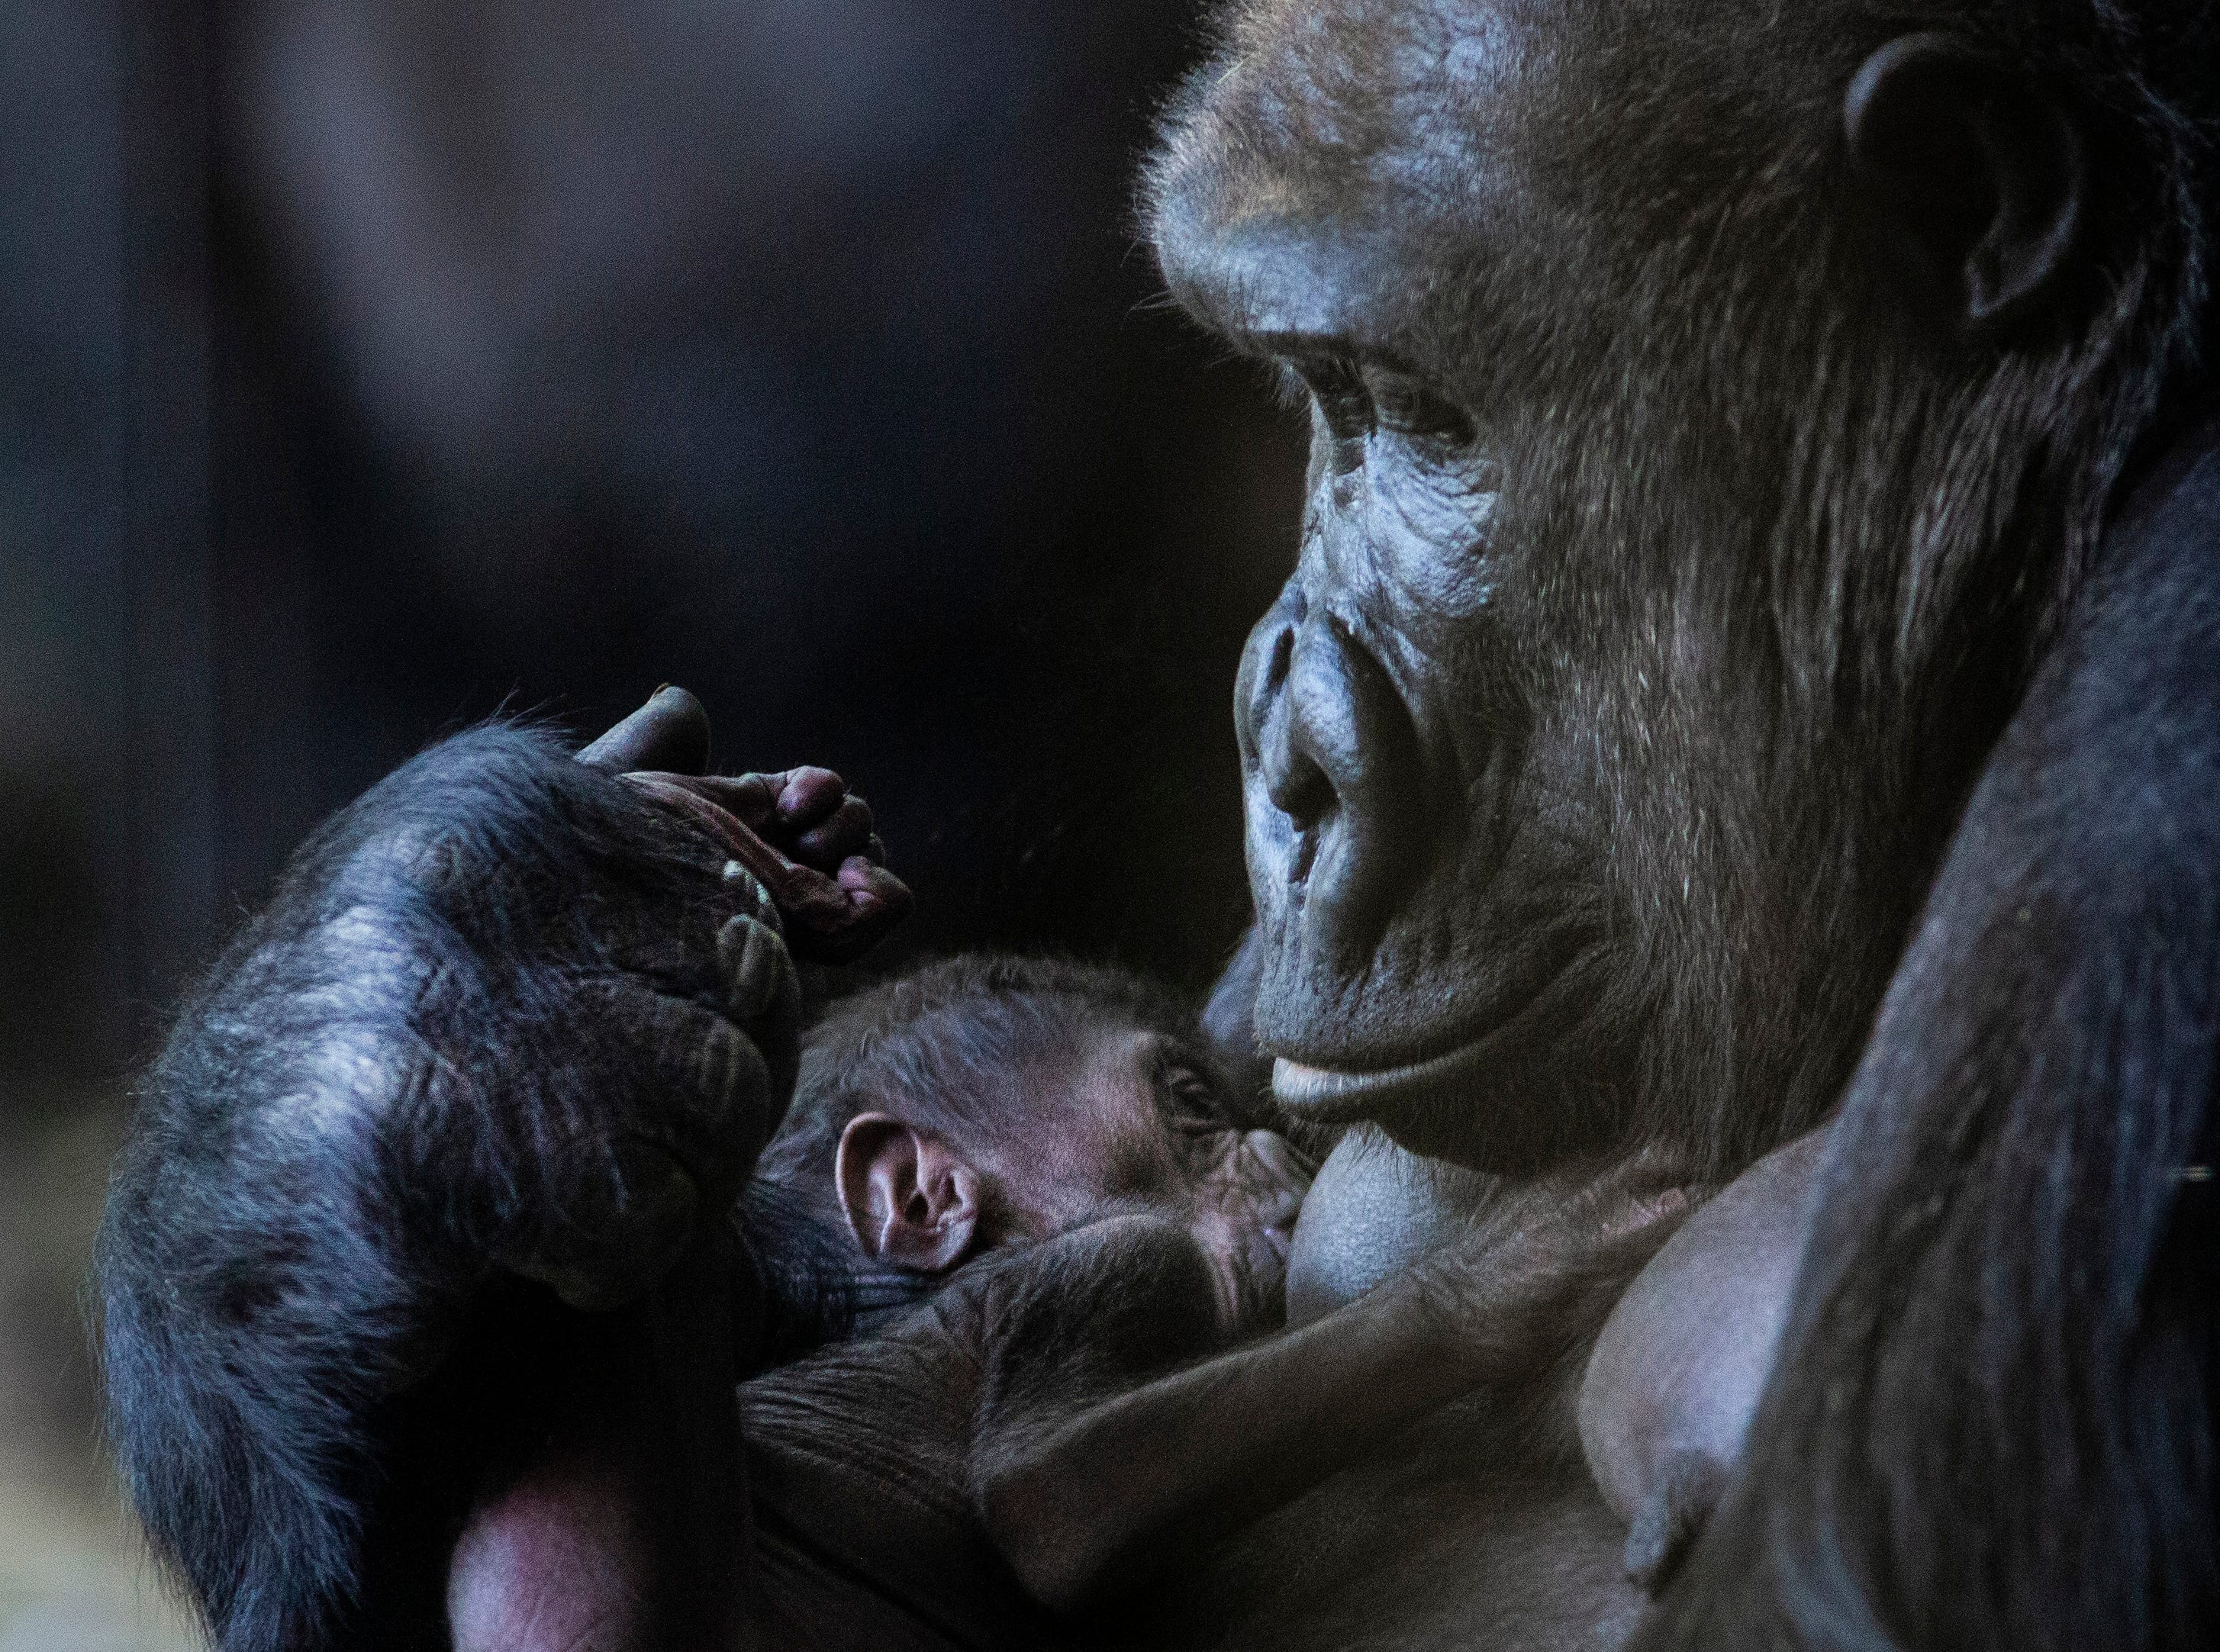 Rollie, a 22-year-old western lowland gorilla, cradles her newborn baby, an unnamed male who was born on Mother's Day at the Regenstein Center for African Apes in Lincoln Park Zoo in Chicago, Tuesday, May 14, 2019.